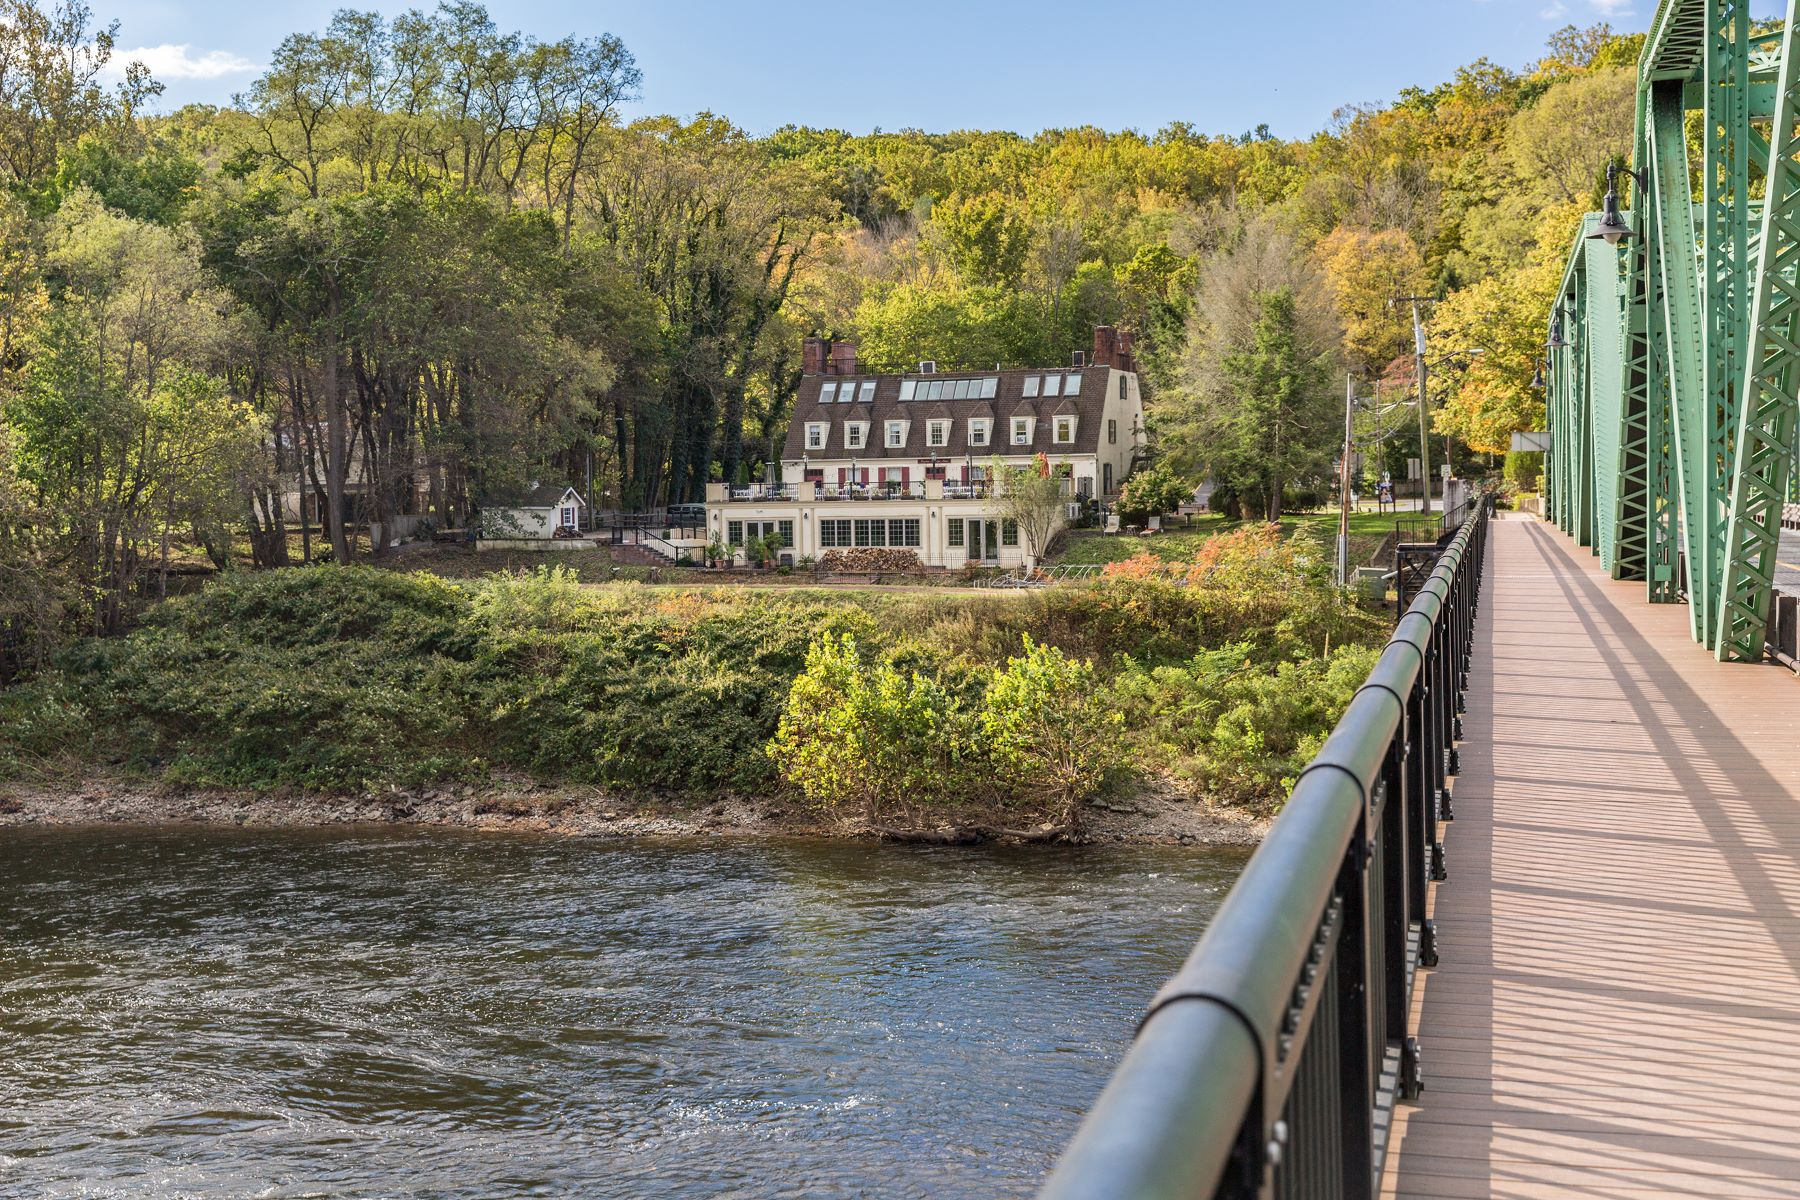 Bed and Breakfast for Sale at Centre Bridge Inn 2998 River Rd, New Hope, Pennsylvania 18938 United States